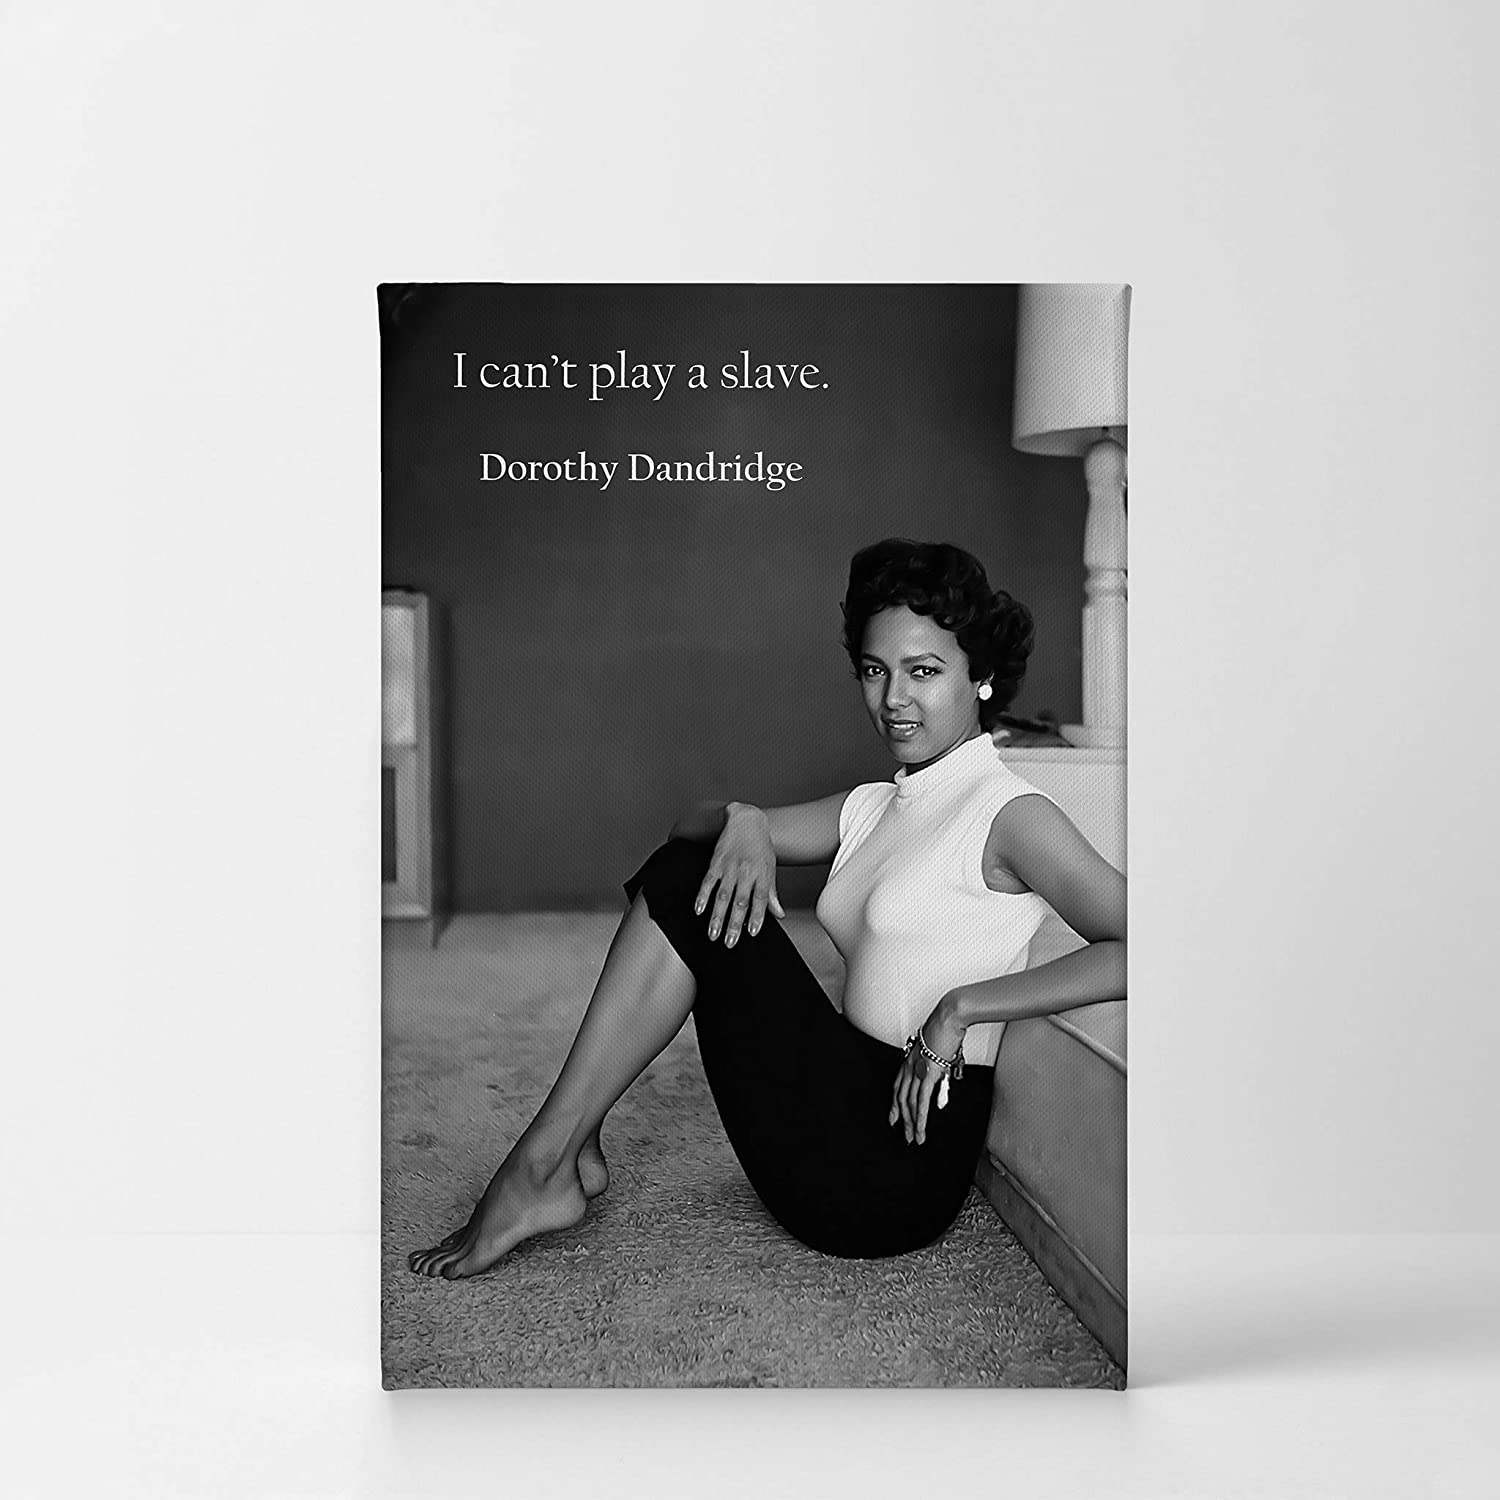 Quote by dorothy dandridge and at home photo black and white wall art canvas print beautiful african american icon artwork home decor stretched ready to